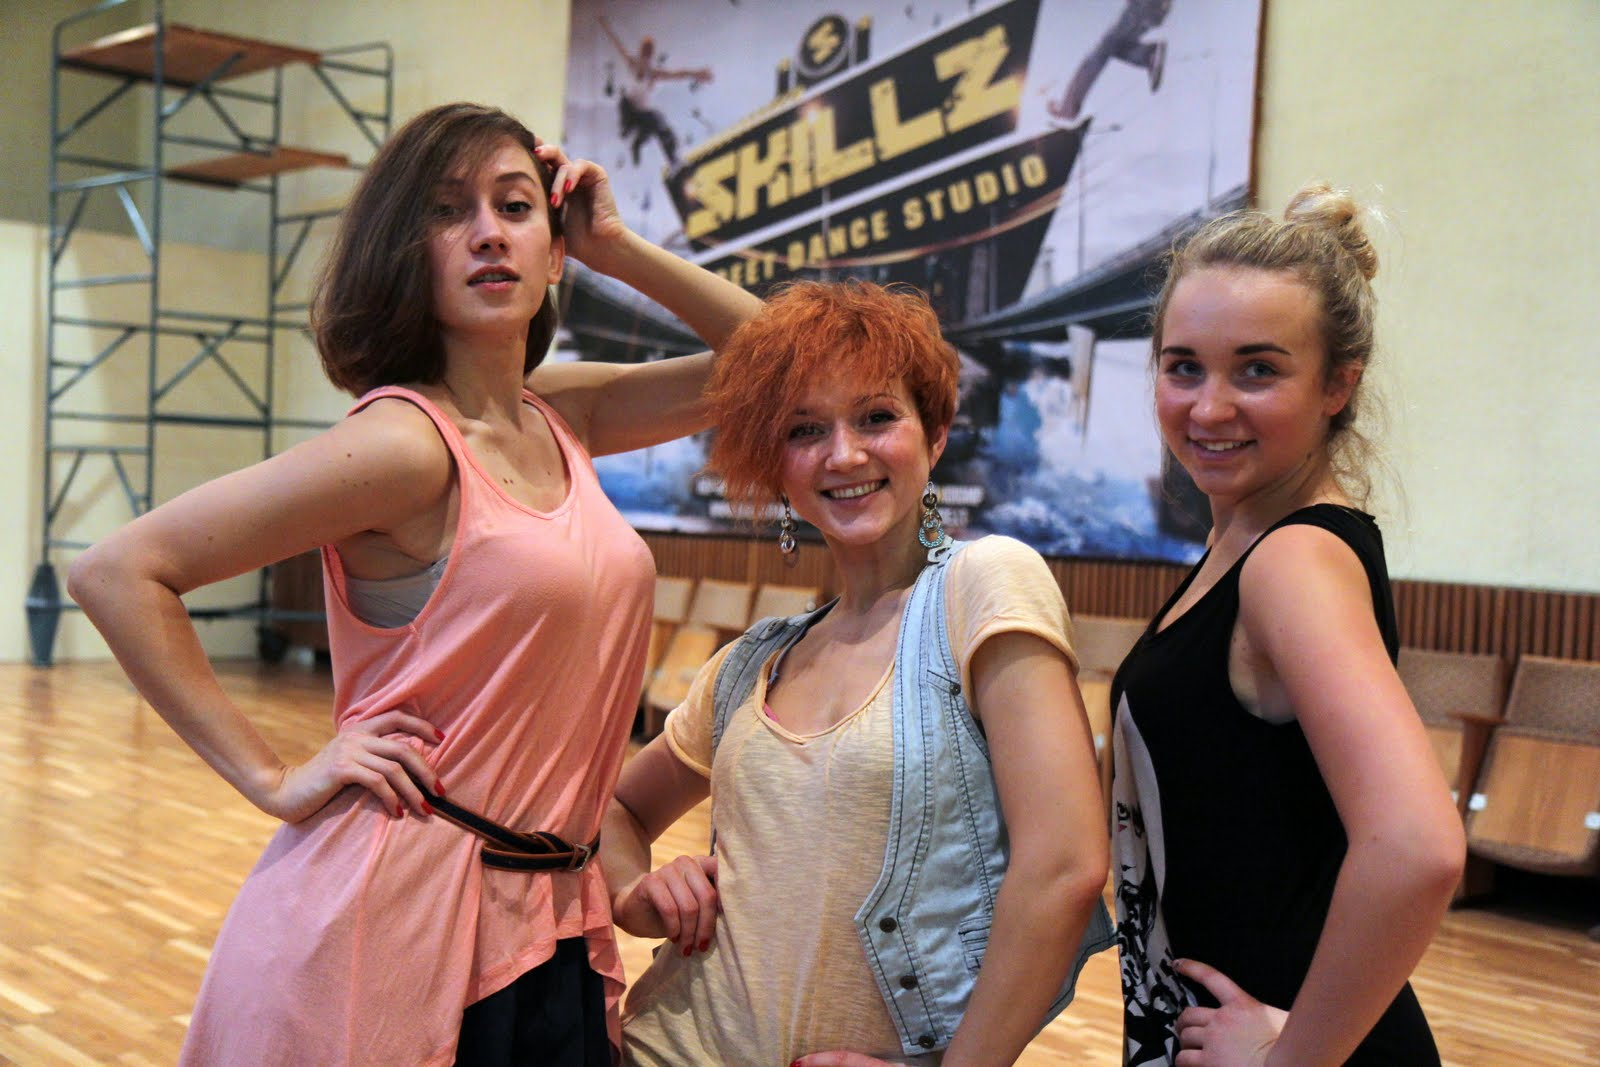 Waacking workshop with Nastya (LV) - IMG_2091.JPG